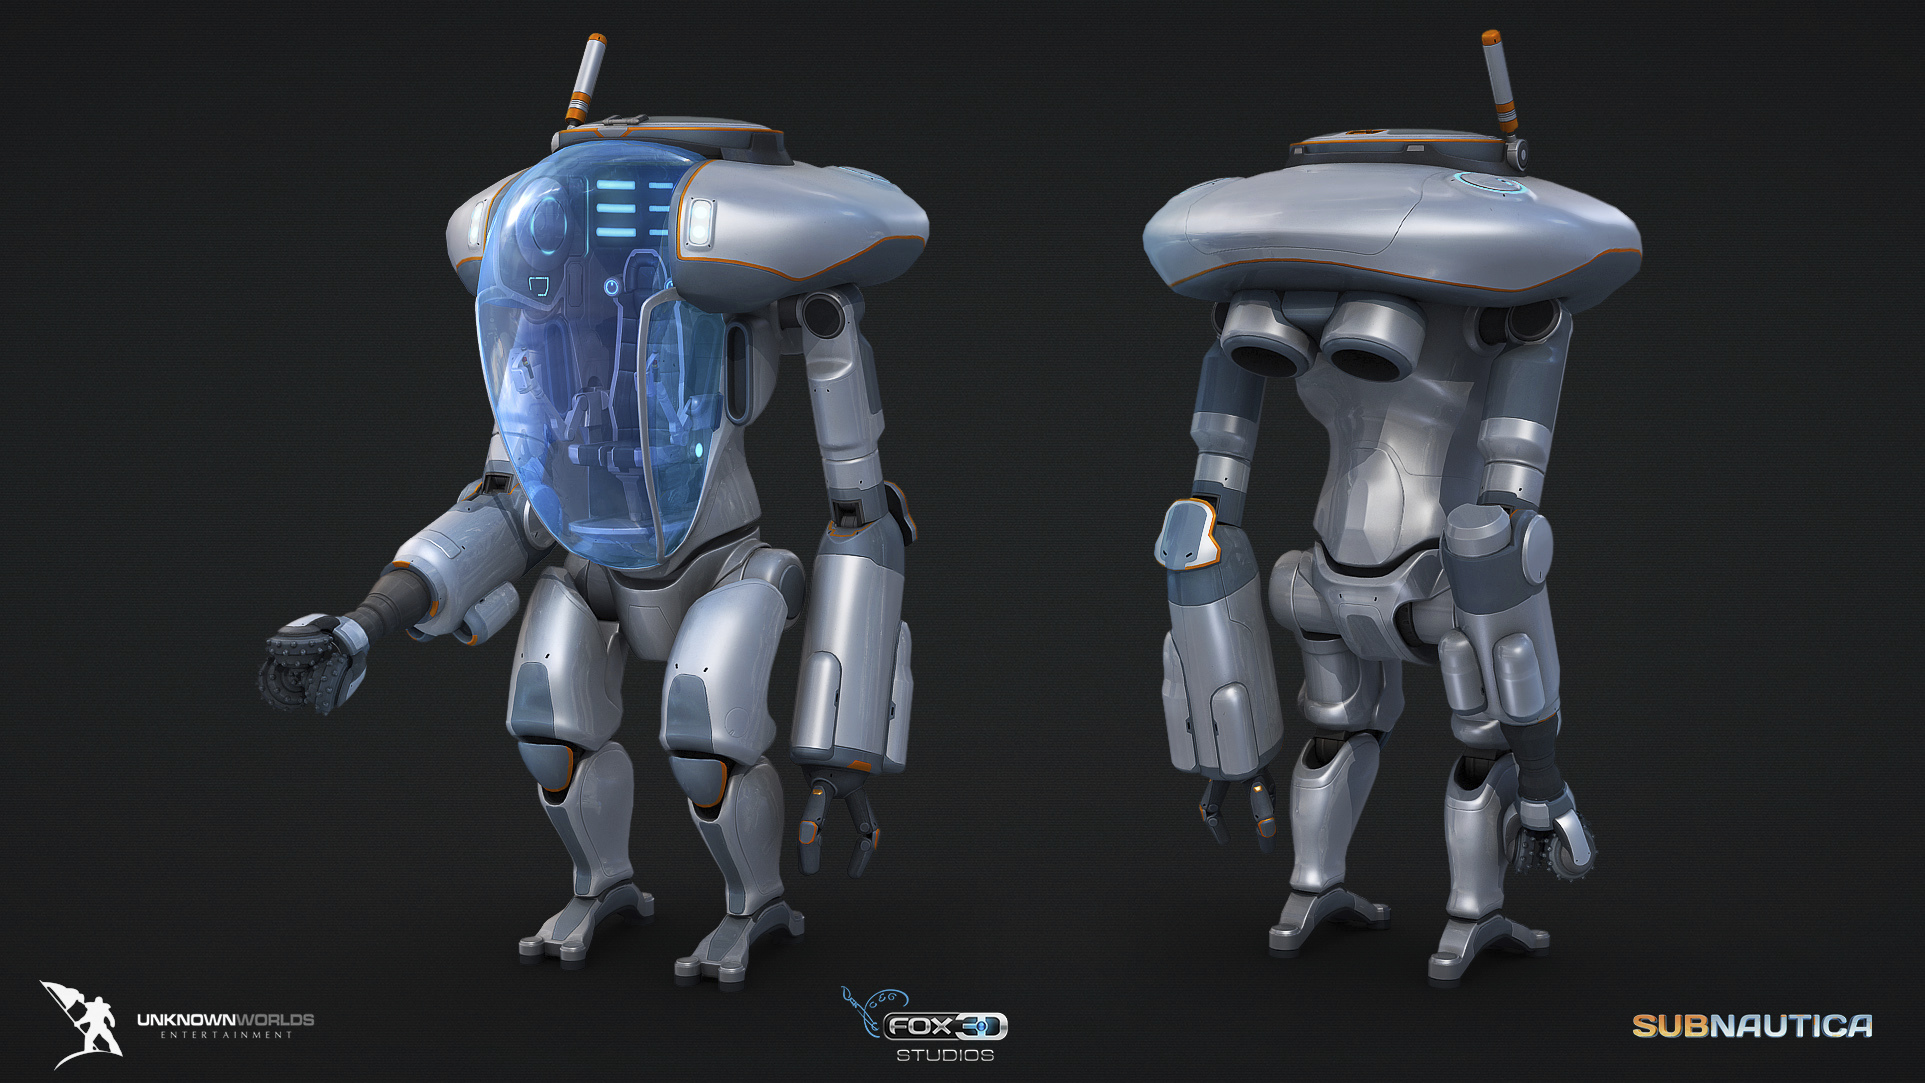 mech_design_crafting_subnautica